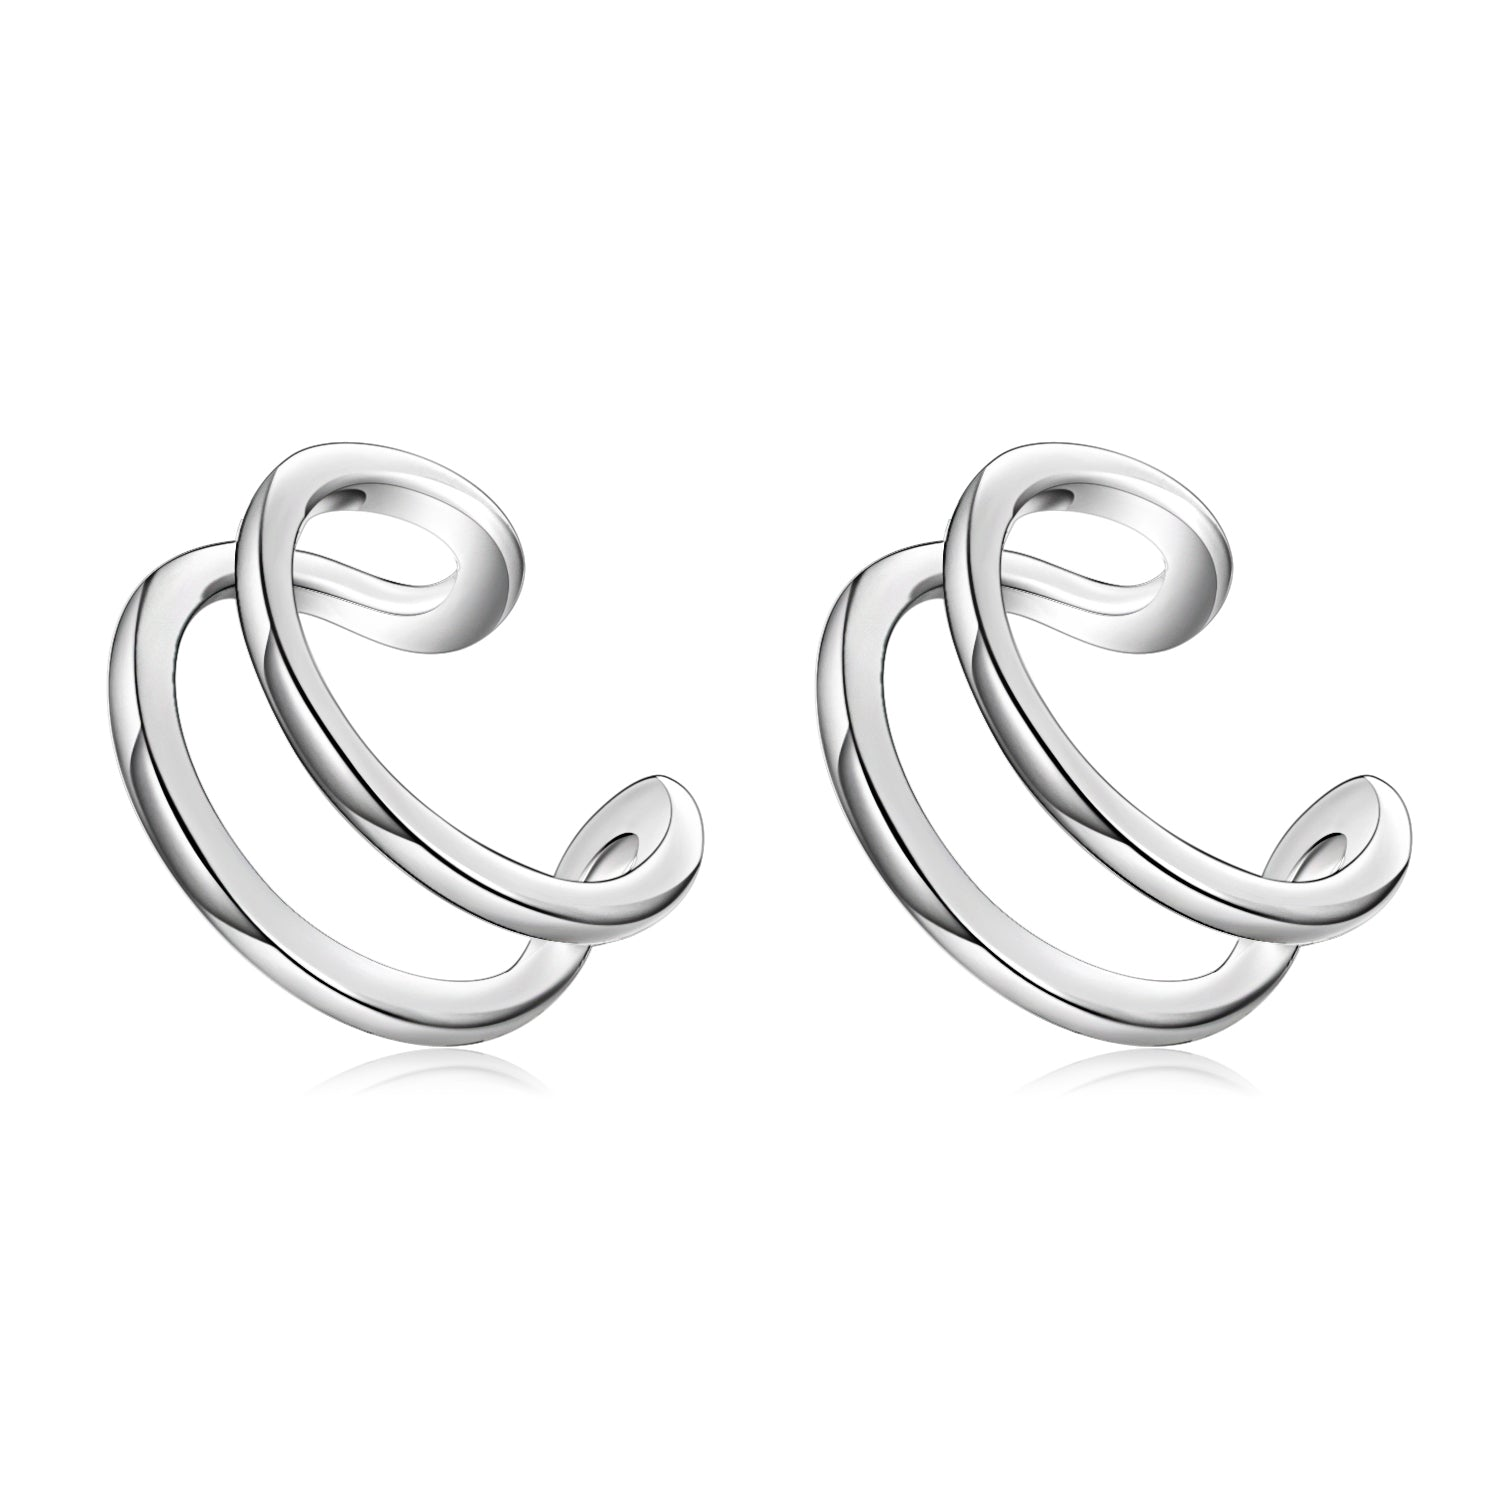 Clip Earrings Silver Wire Open Man an Woman Earrings Jewelry Design